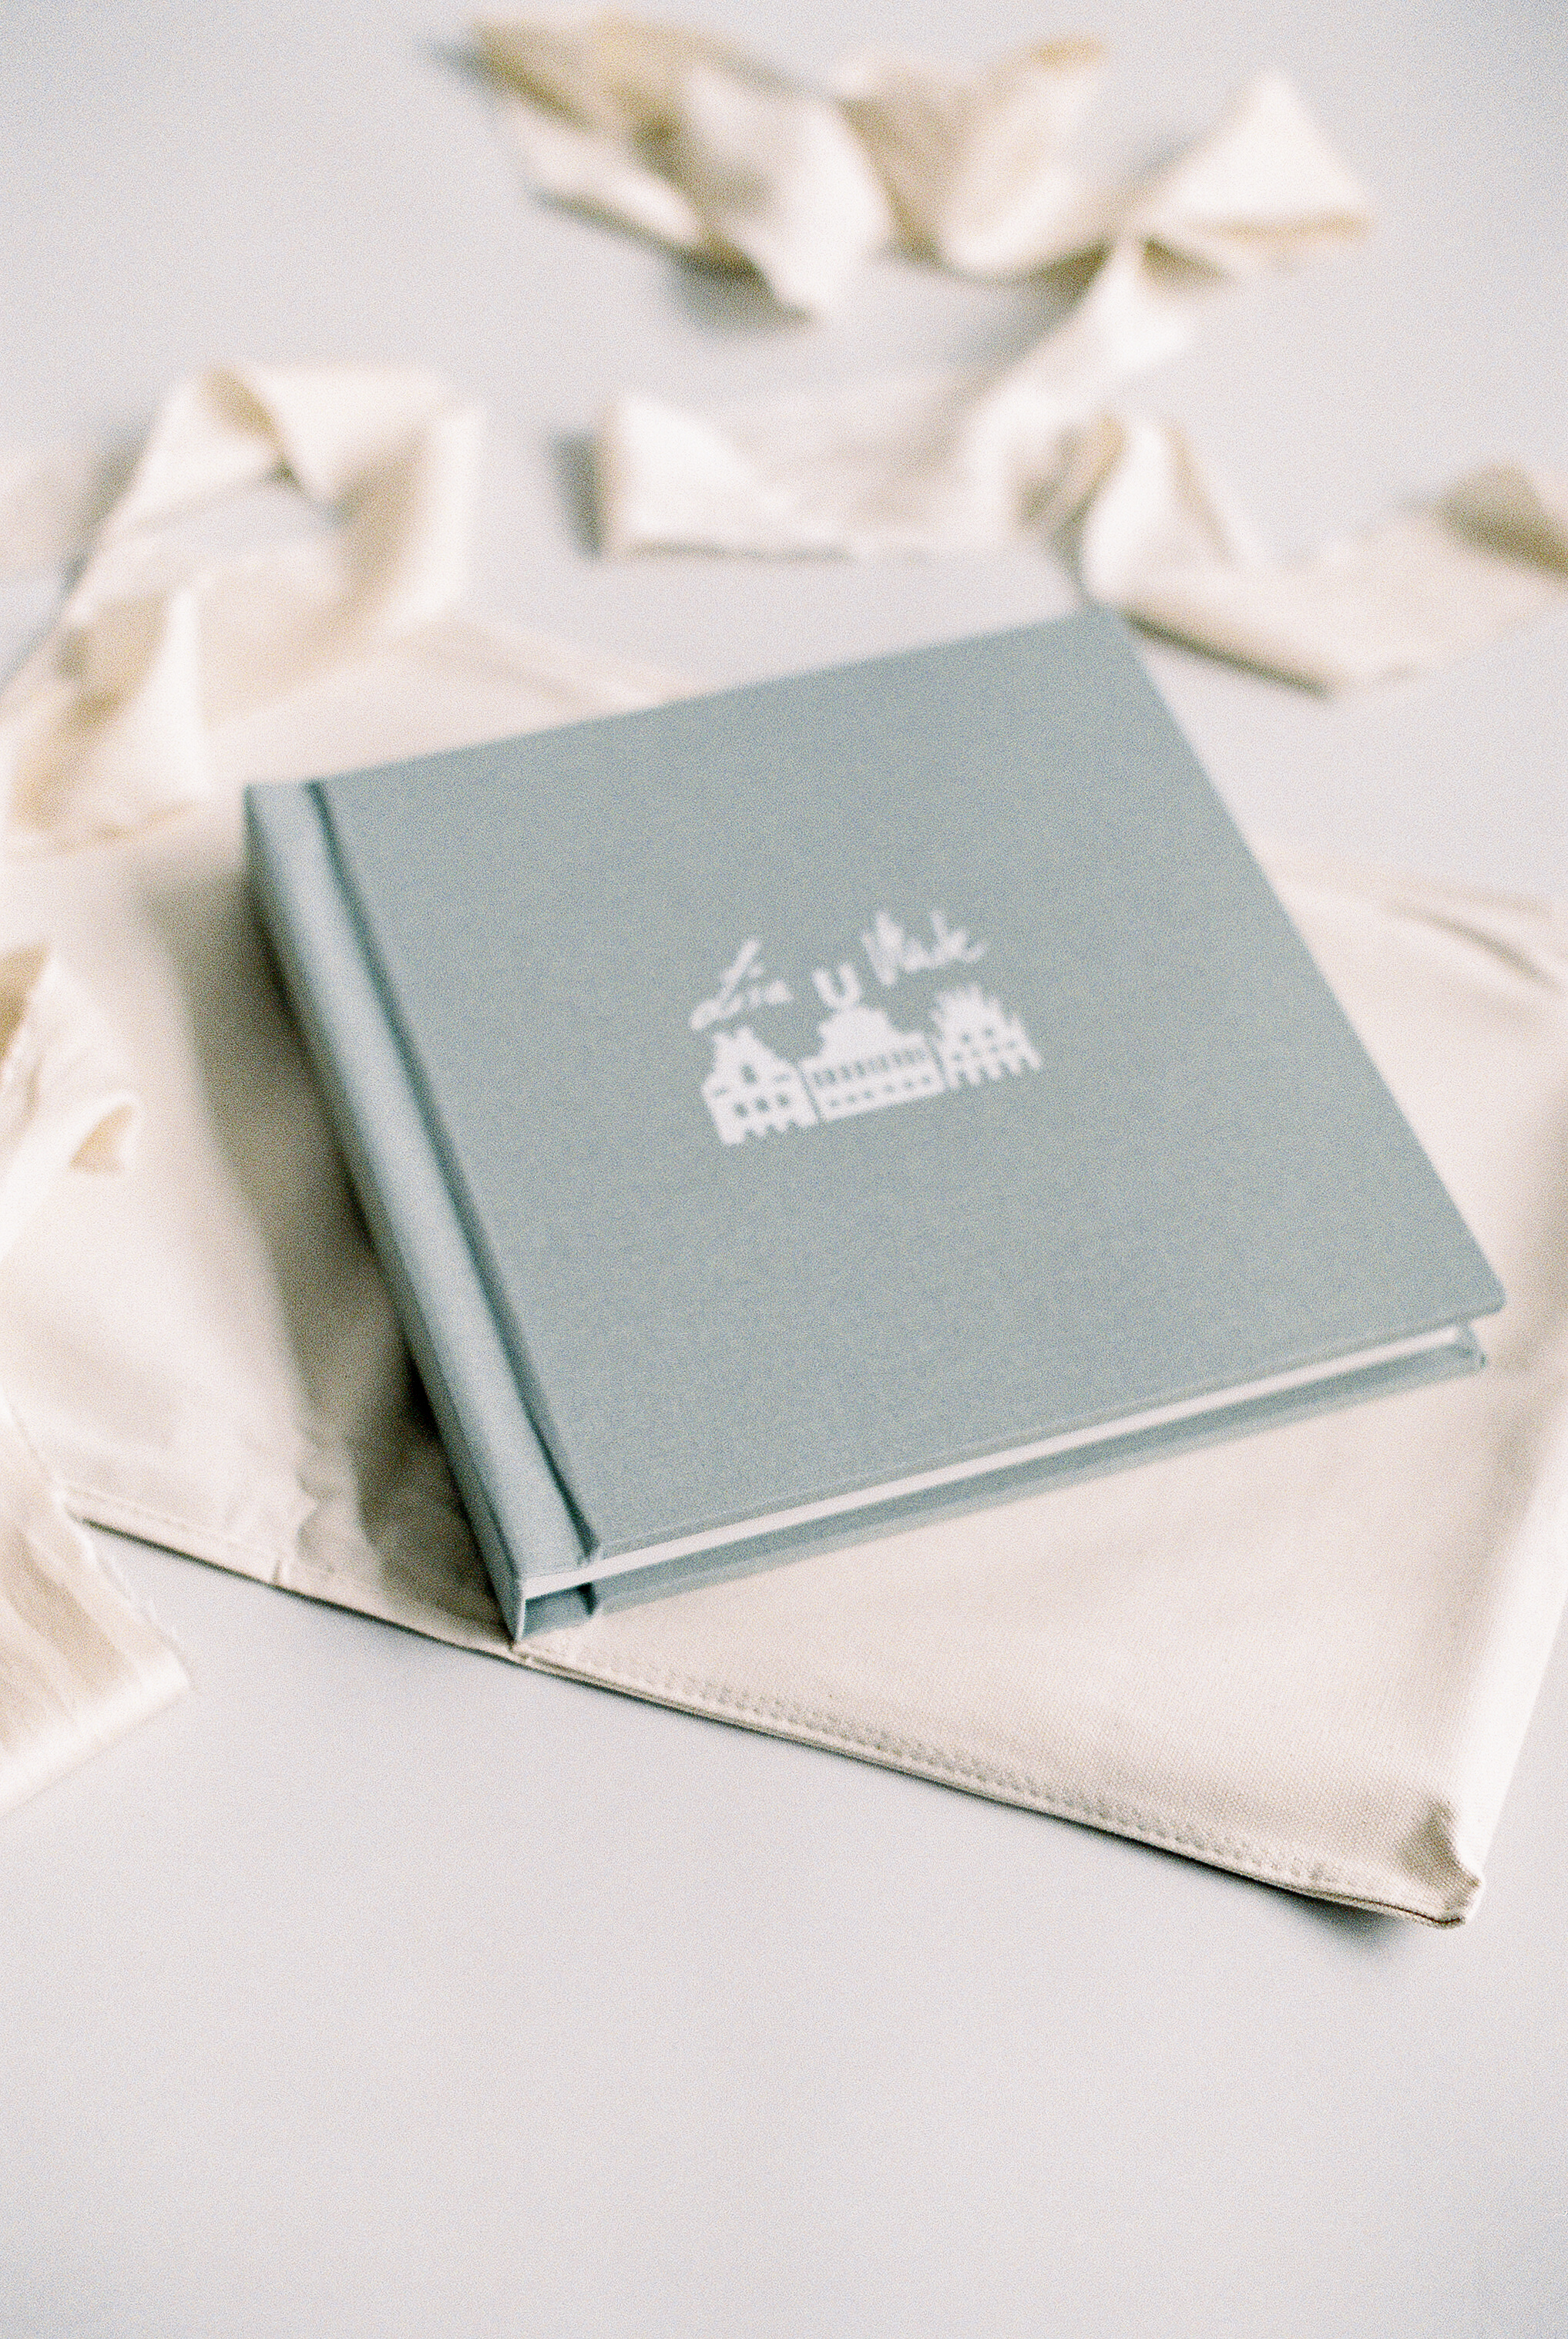 Other wishes? - Are you wishing for a bespoke wedding album? Please visit the lovely platform and choose your features! Just click the image!